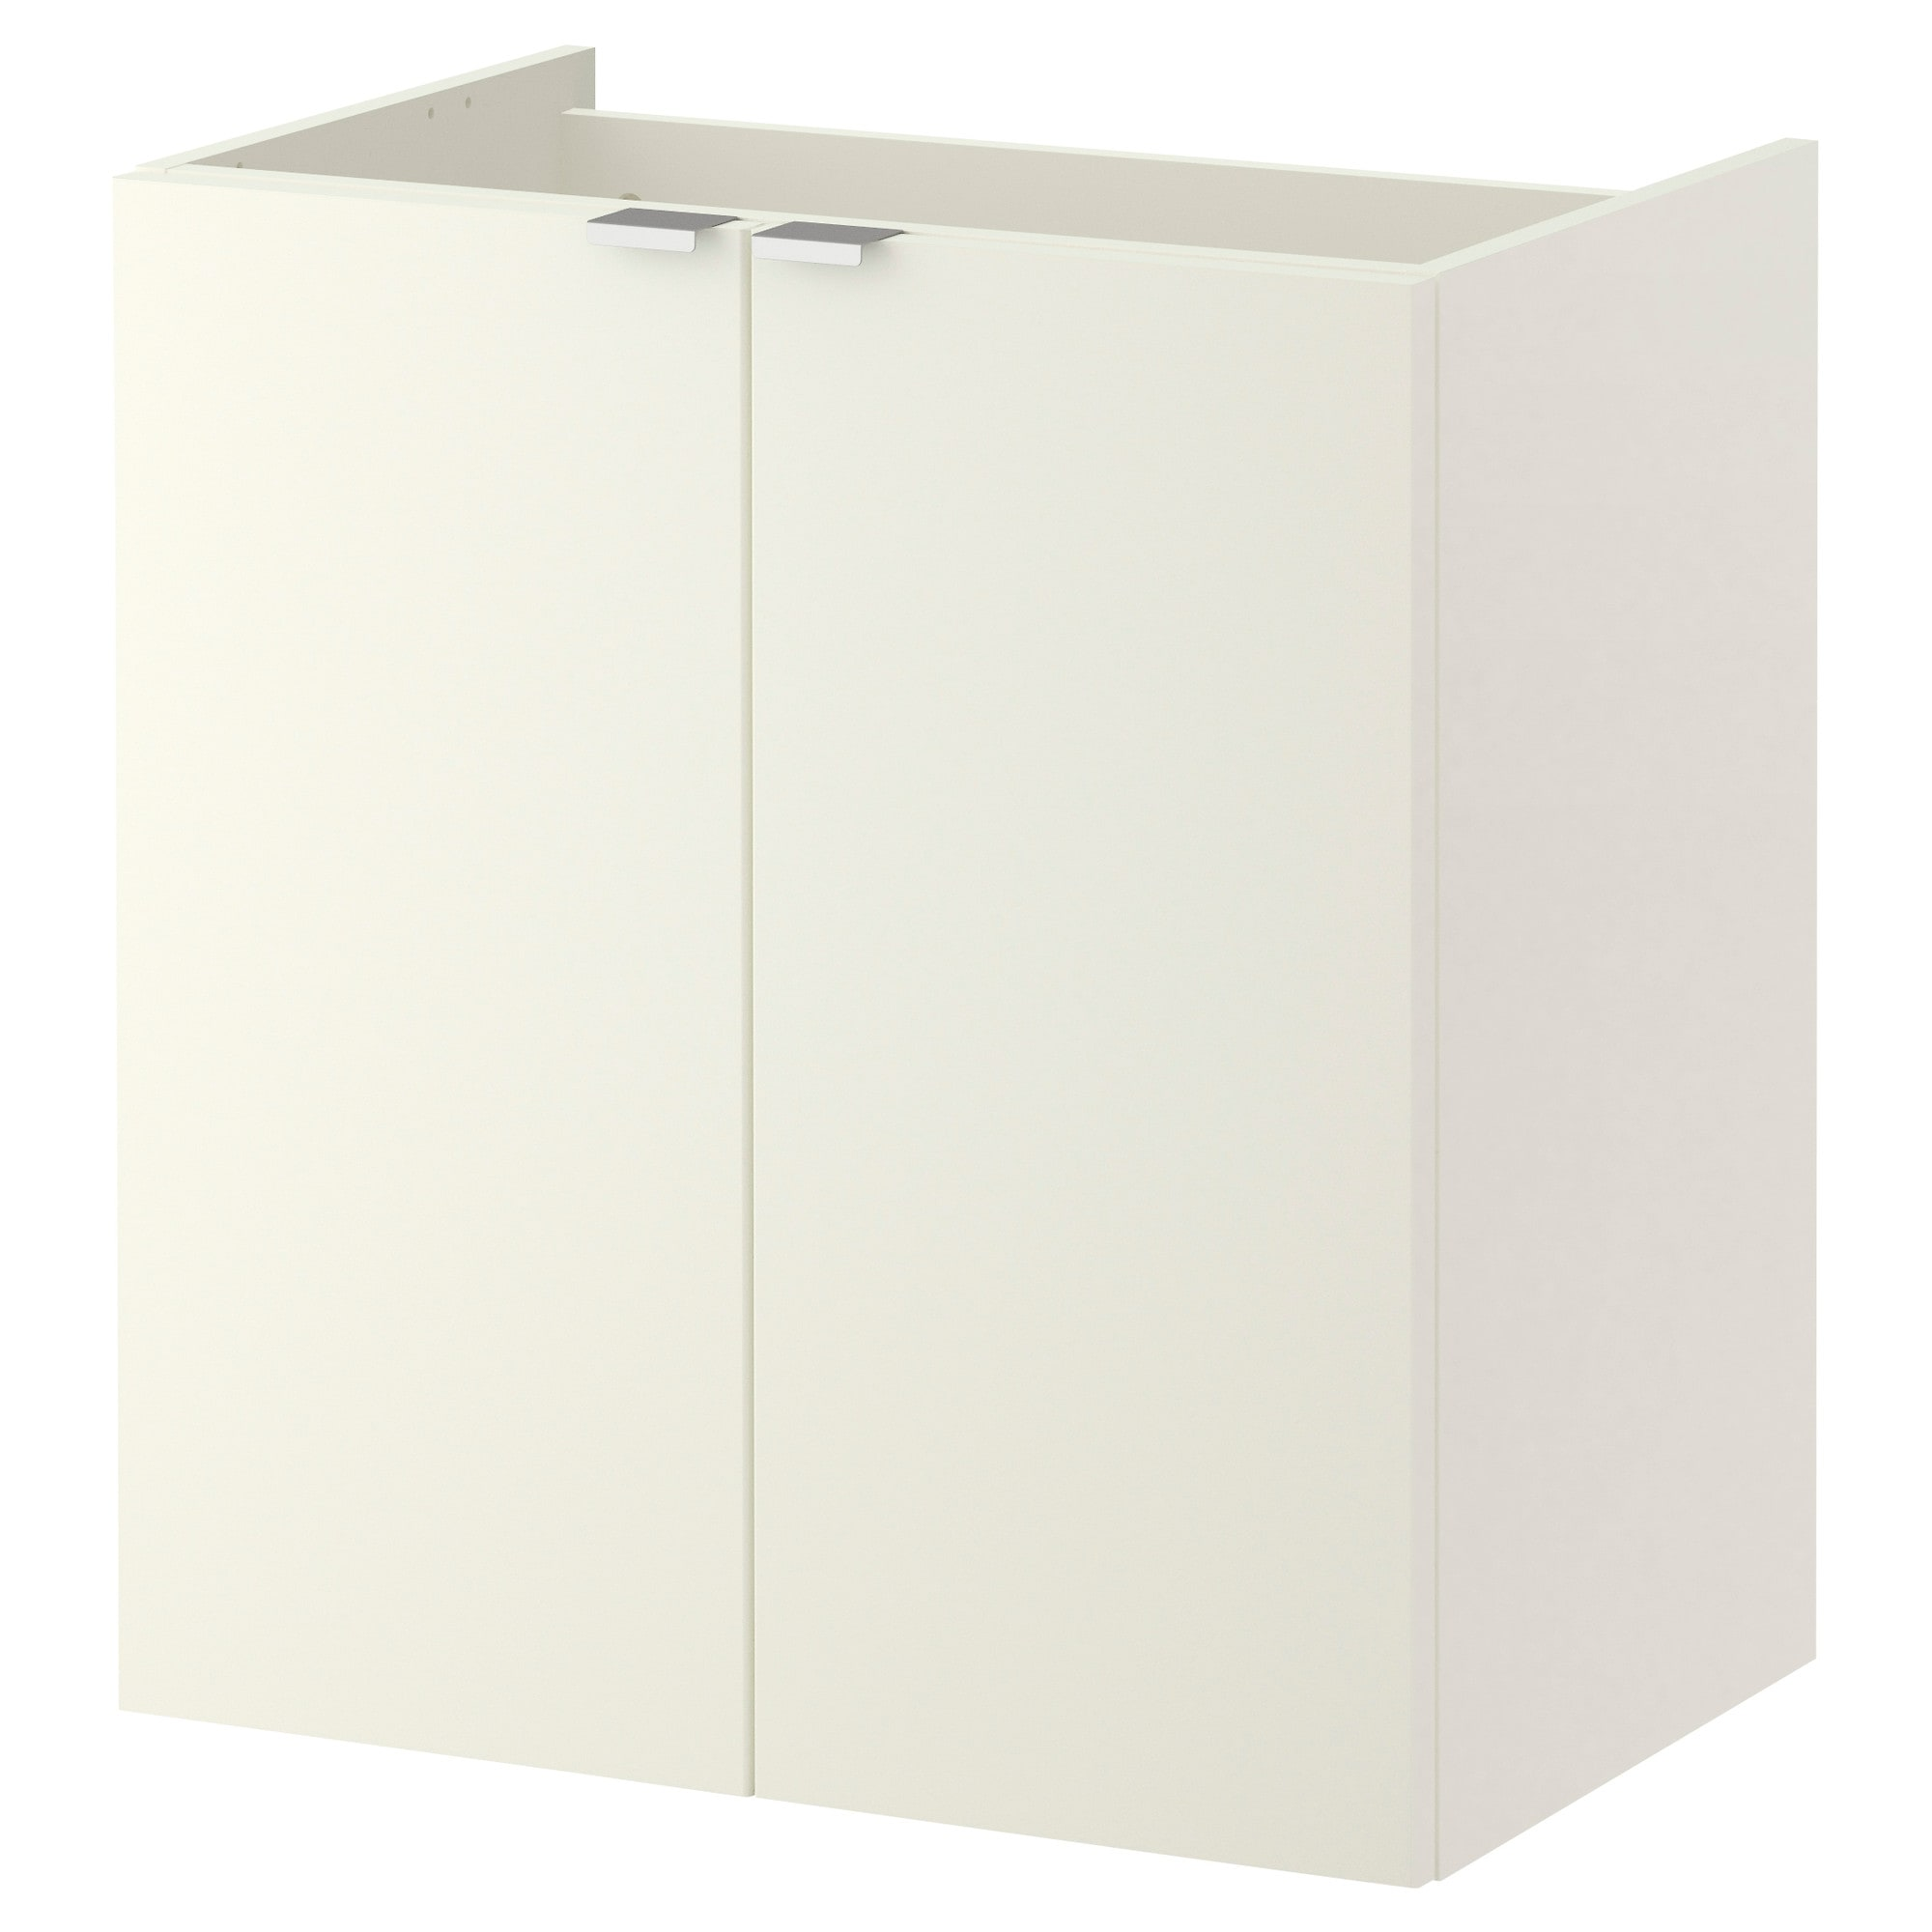 "LILL…NGEN Sink cabinet with 2 doors white 23 5 8x15x25 1 4 "" IKEA"